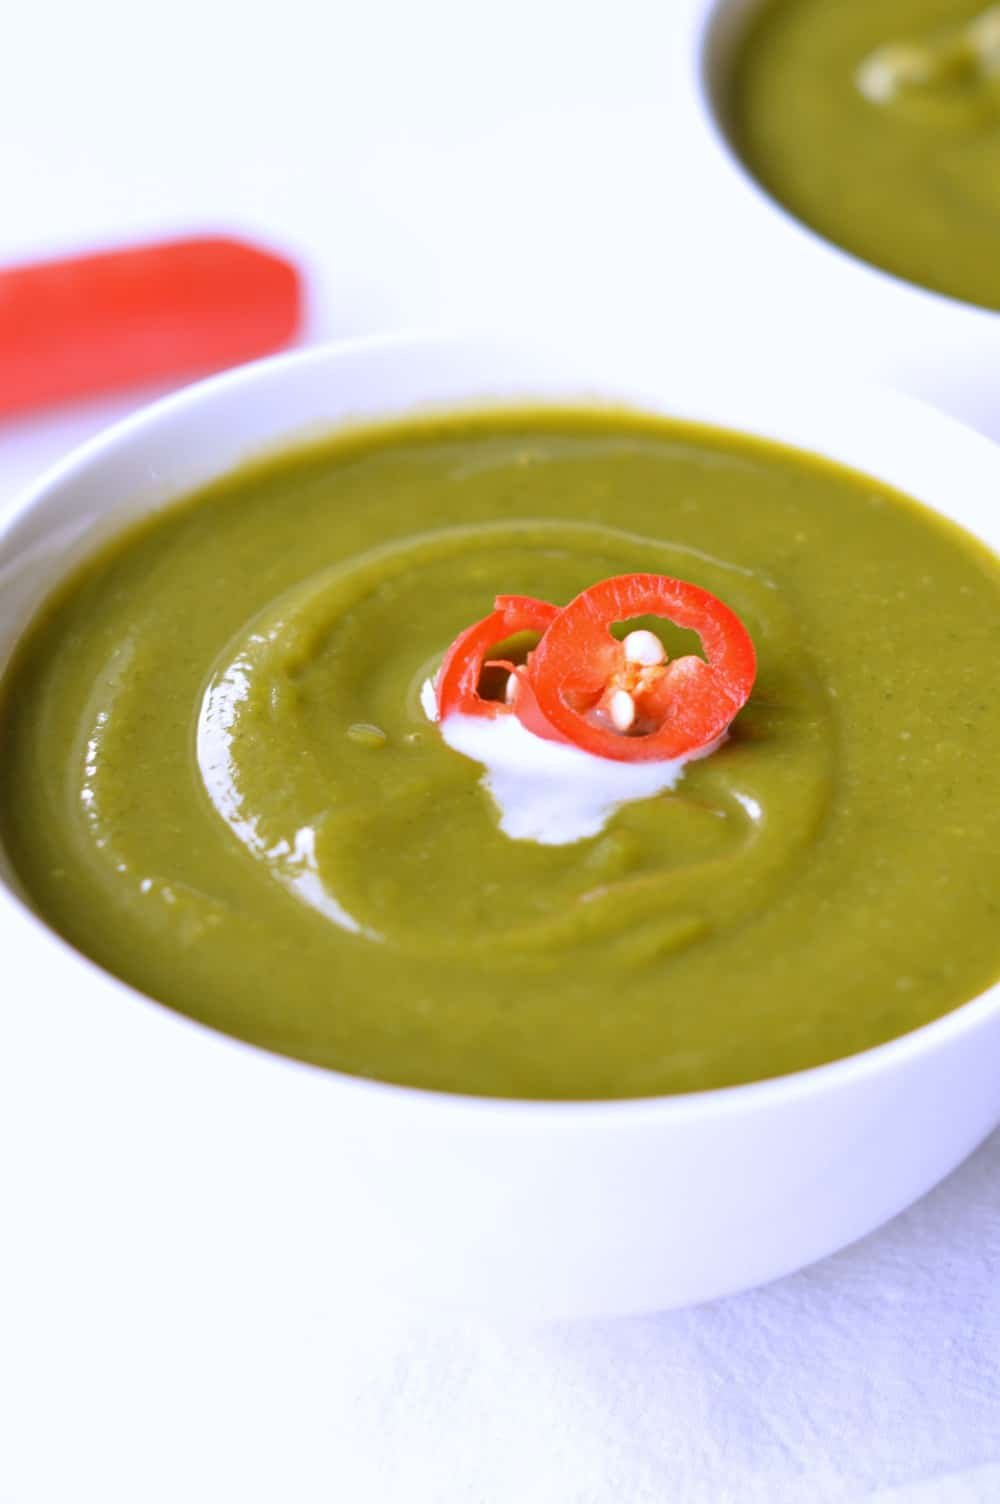 sweet potato spinach soup is an healthy creamy green soup made with 3 imple vegetables and ready in 20 minutes.